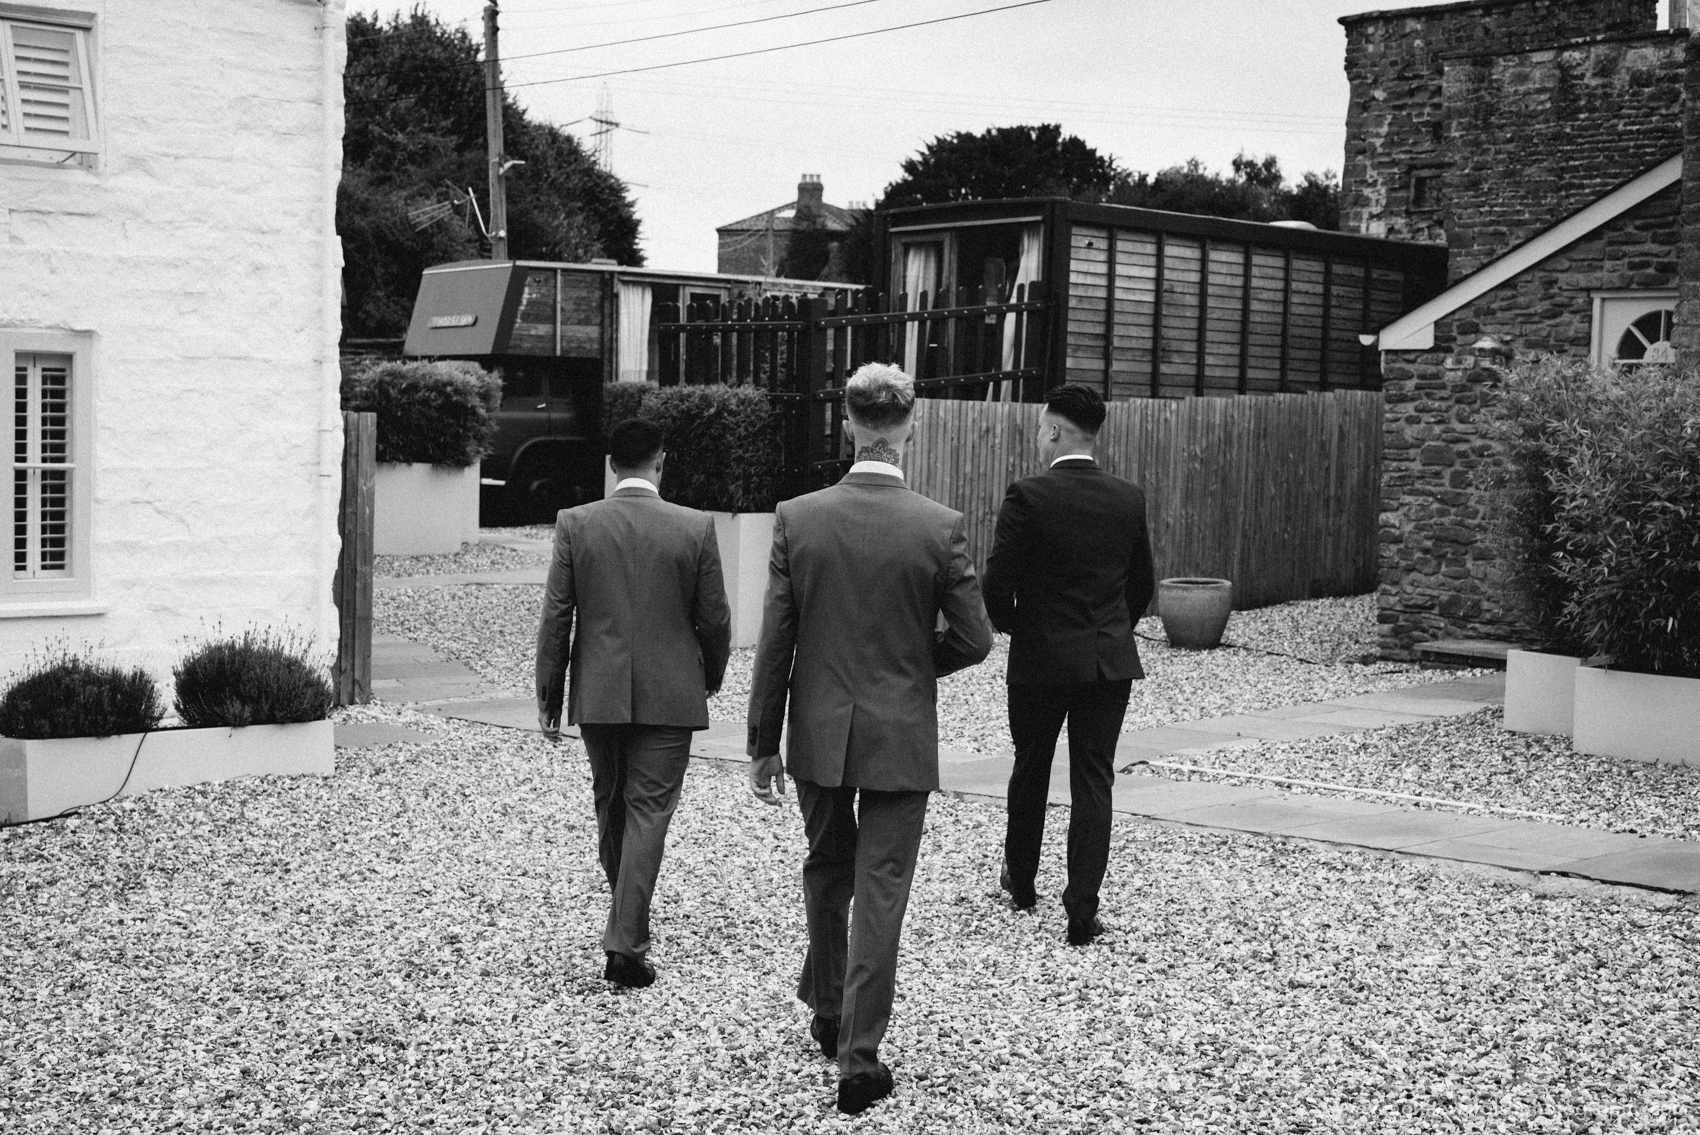 The Groom and his groomsmen walk around the grounds to look at the guest accommodation.